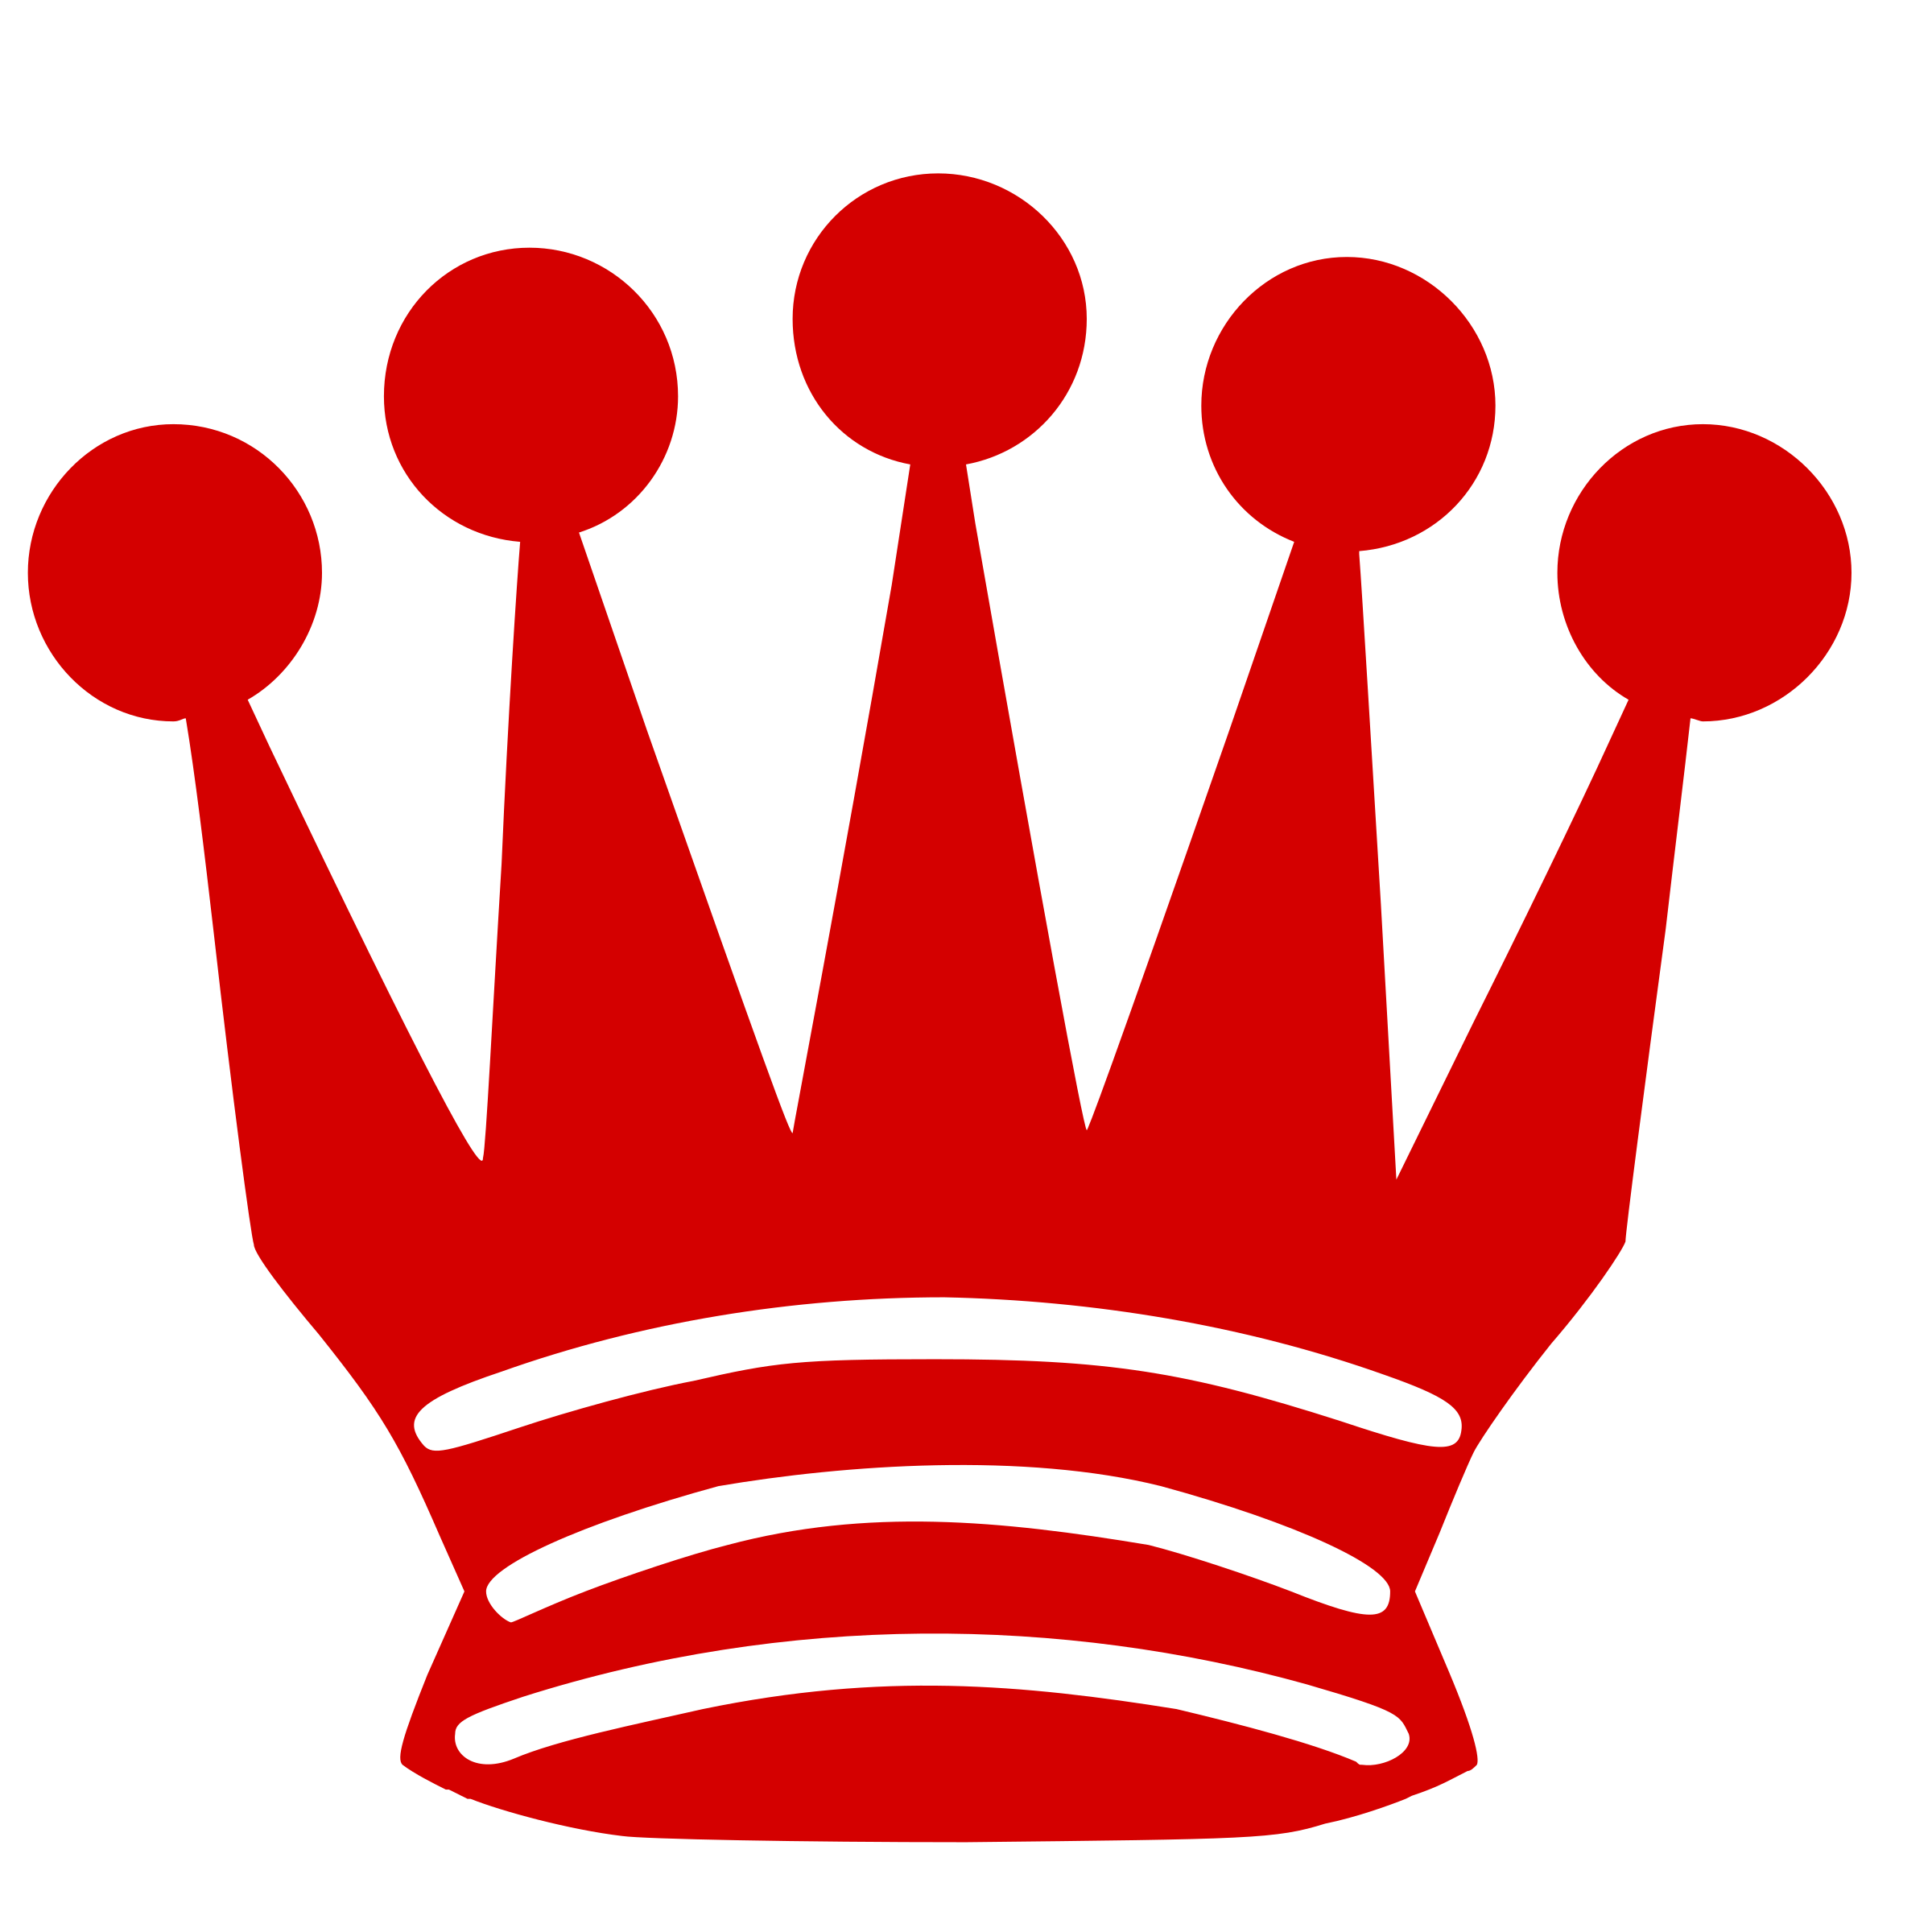 Chess piece silhouette dama. Crown clipart red queen